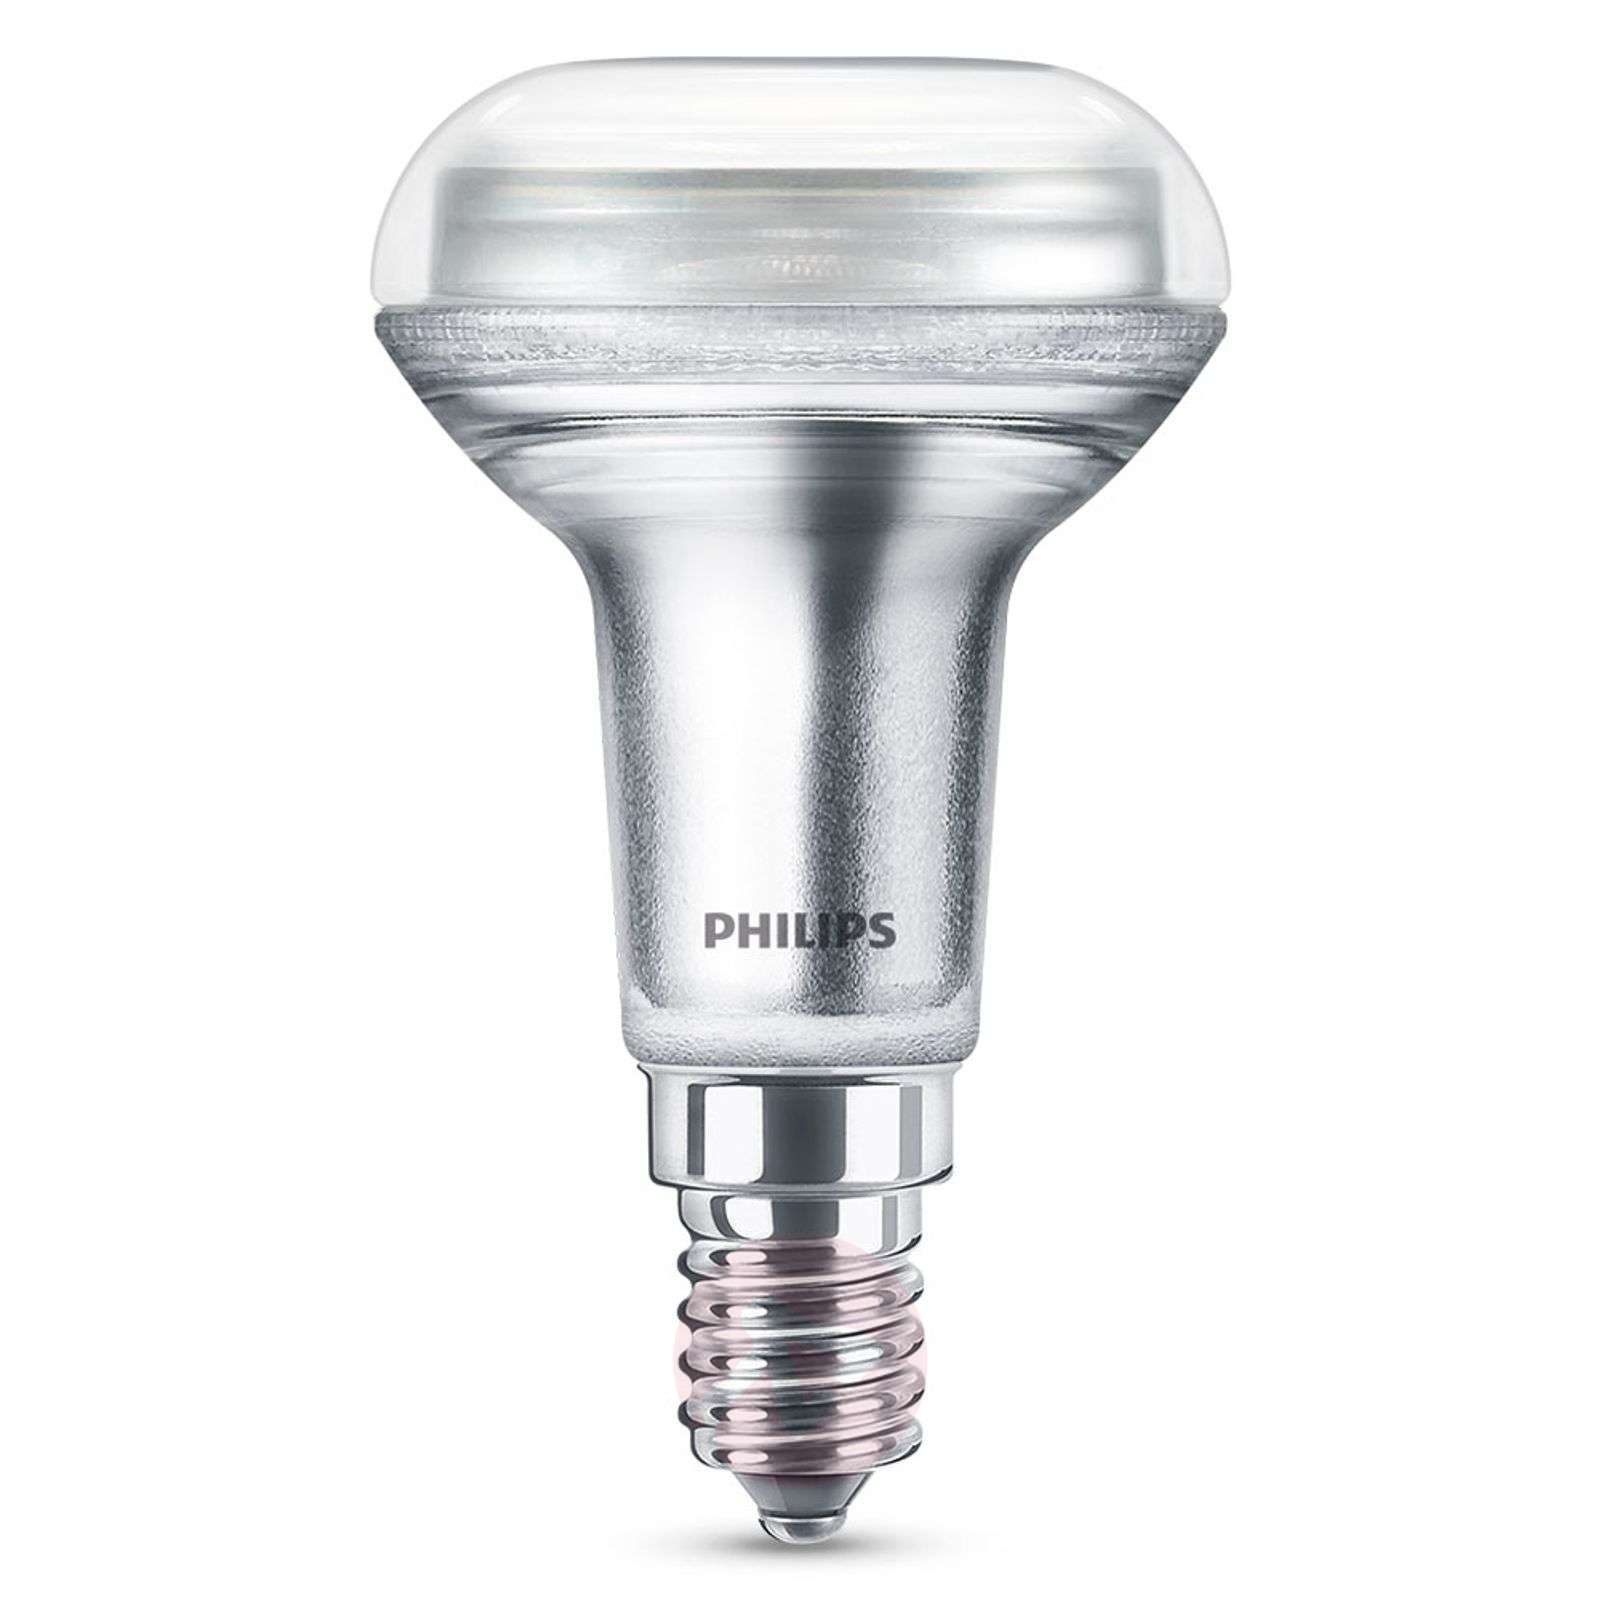 Philips E14 4,3W 827 reflectora R50, atenuable-7530823-01